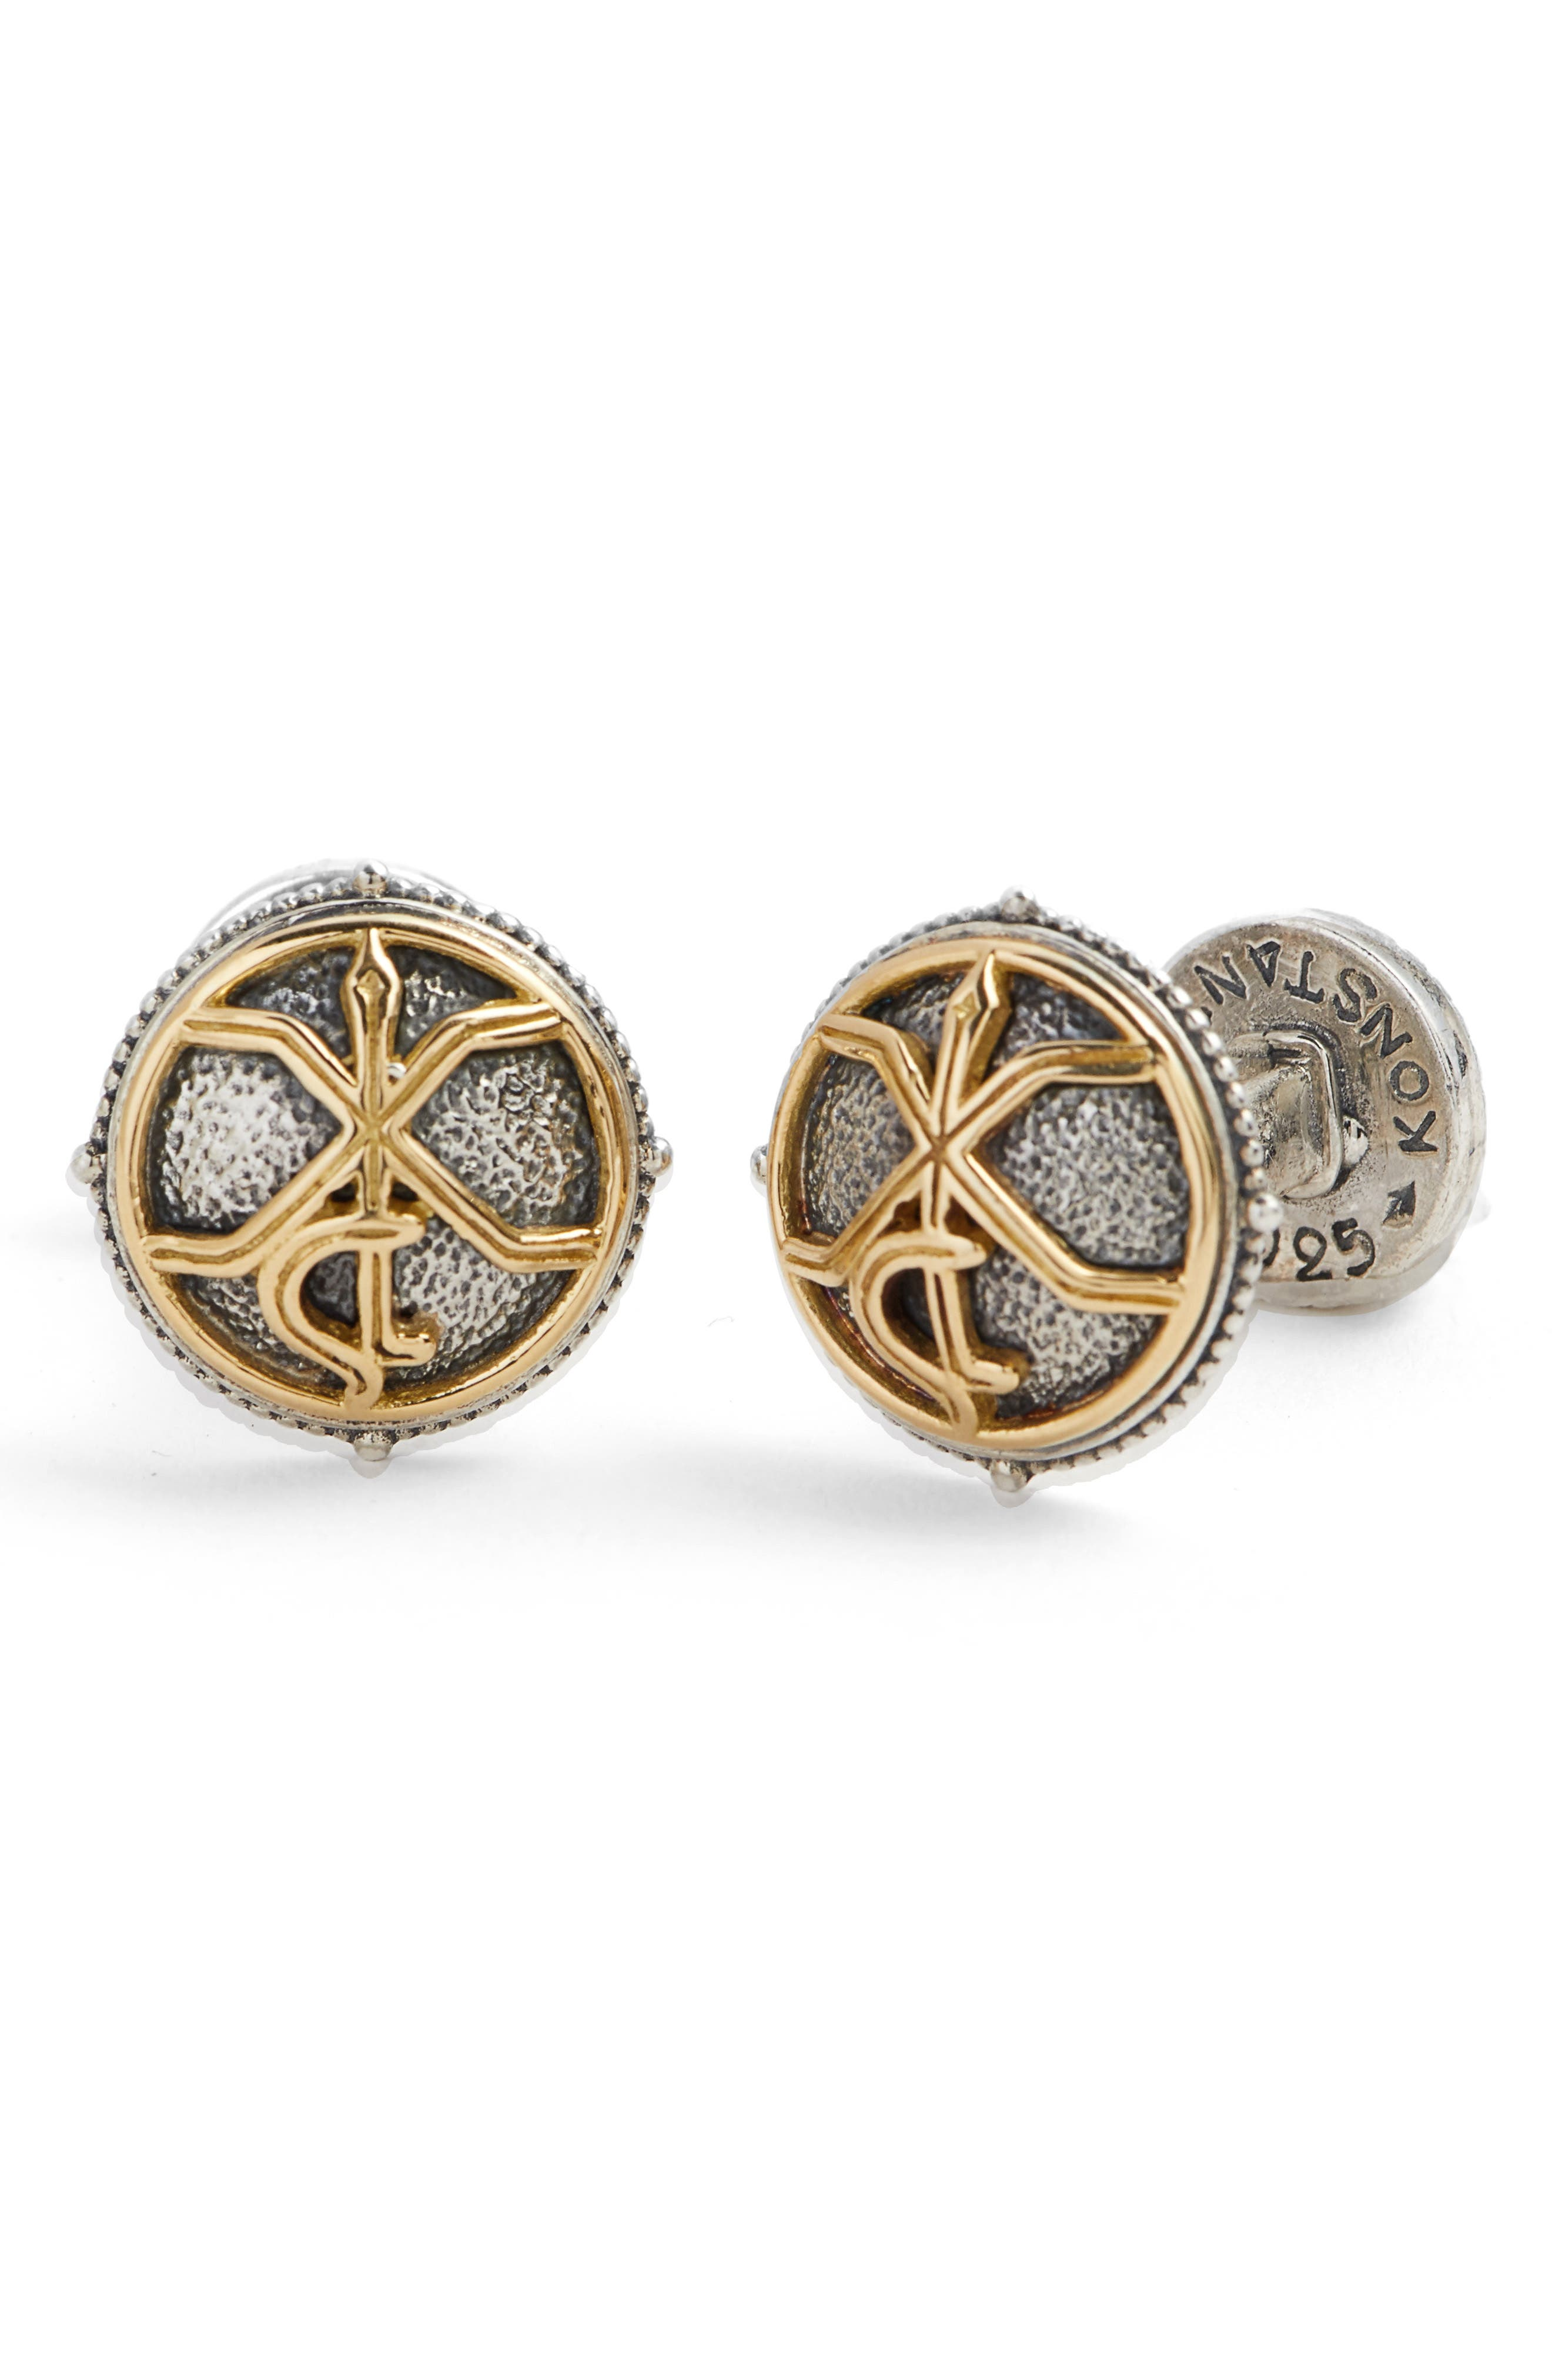 Stavros Round Cuff Links,                             Main thumbnail 1, color,                             SILVER/ GOLD